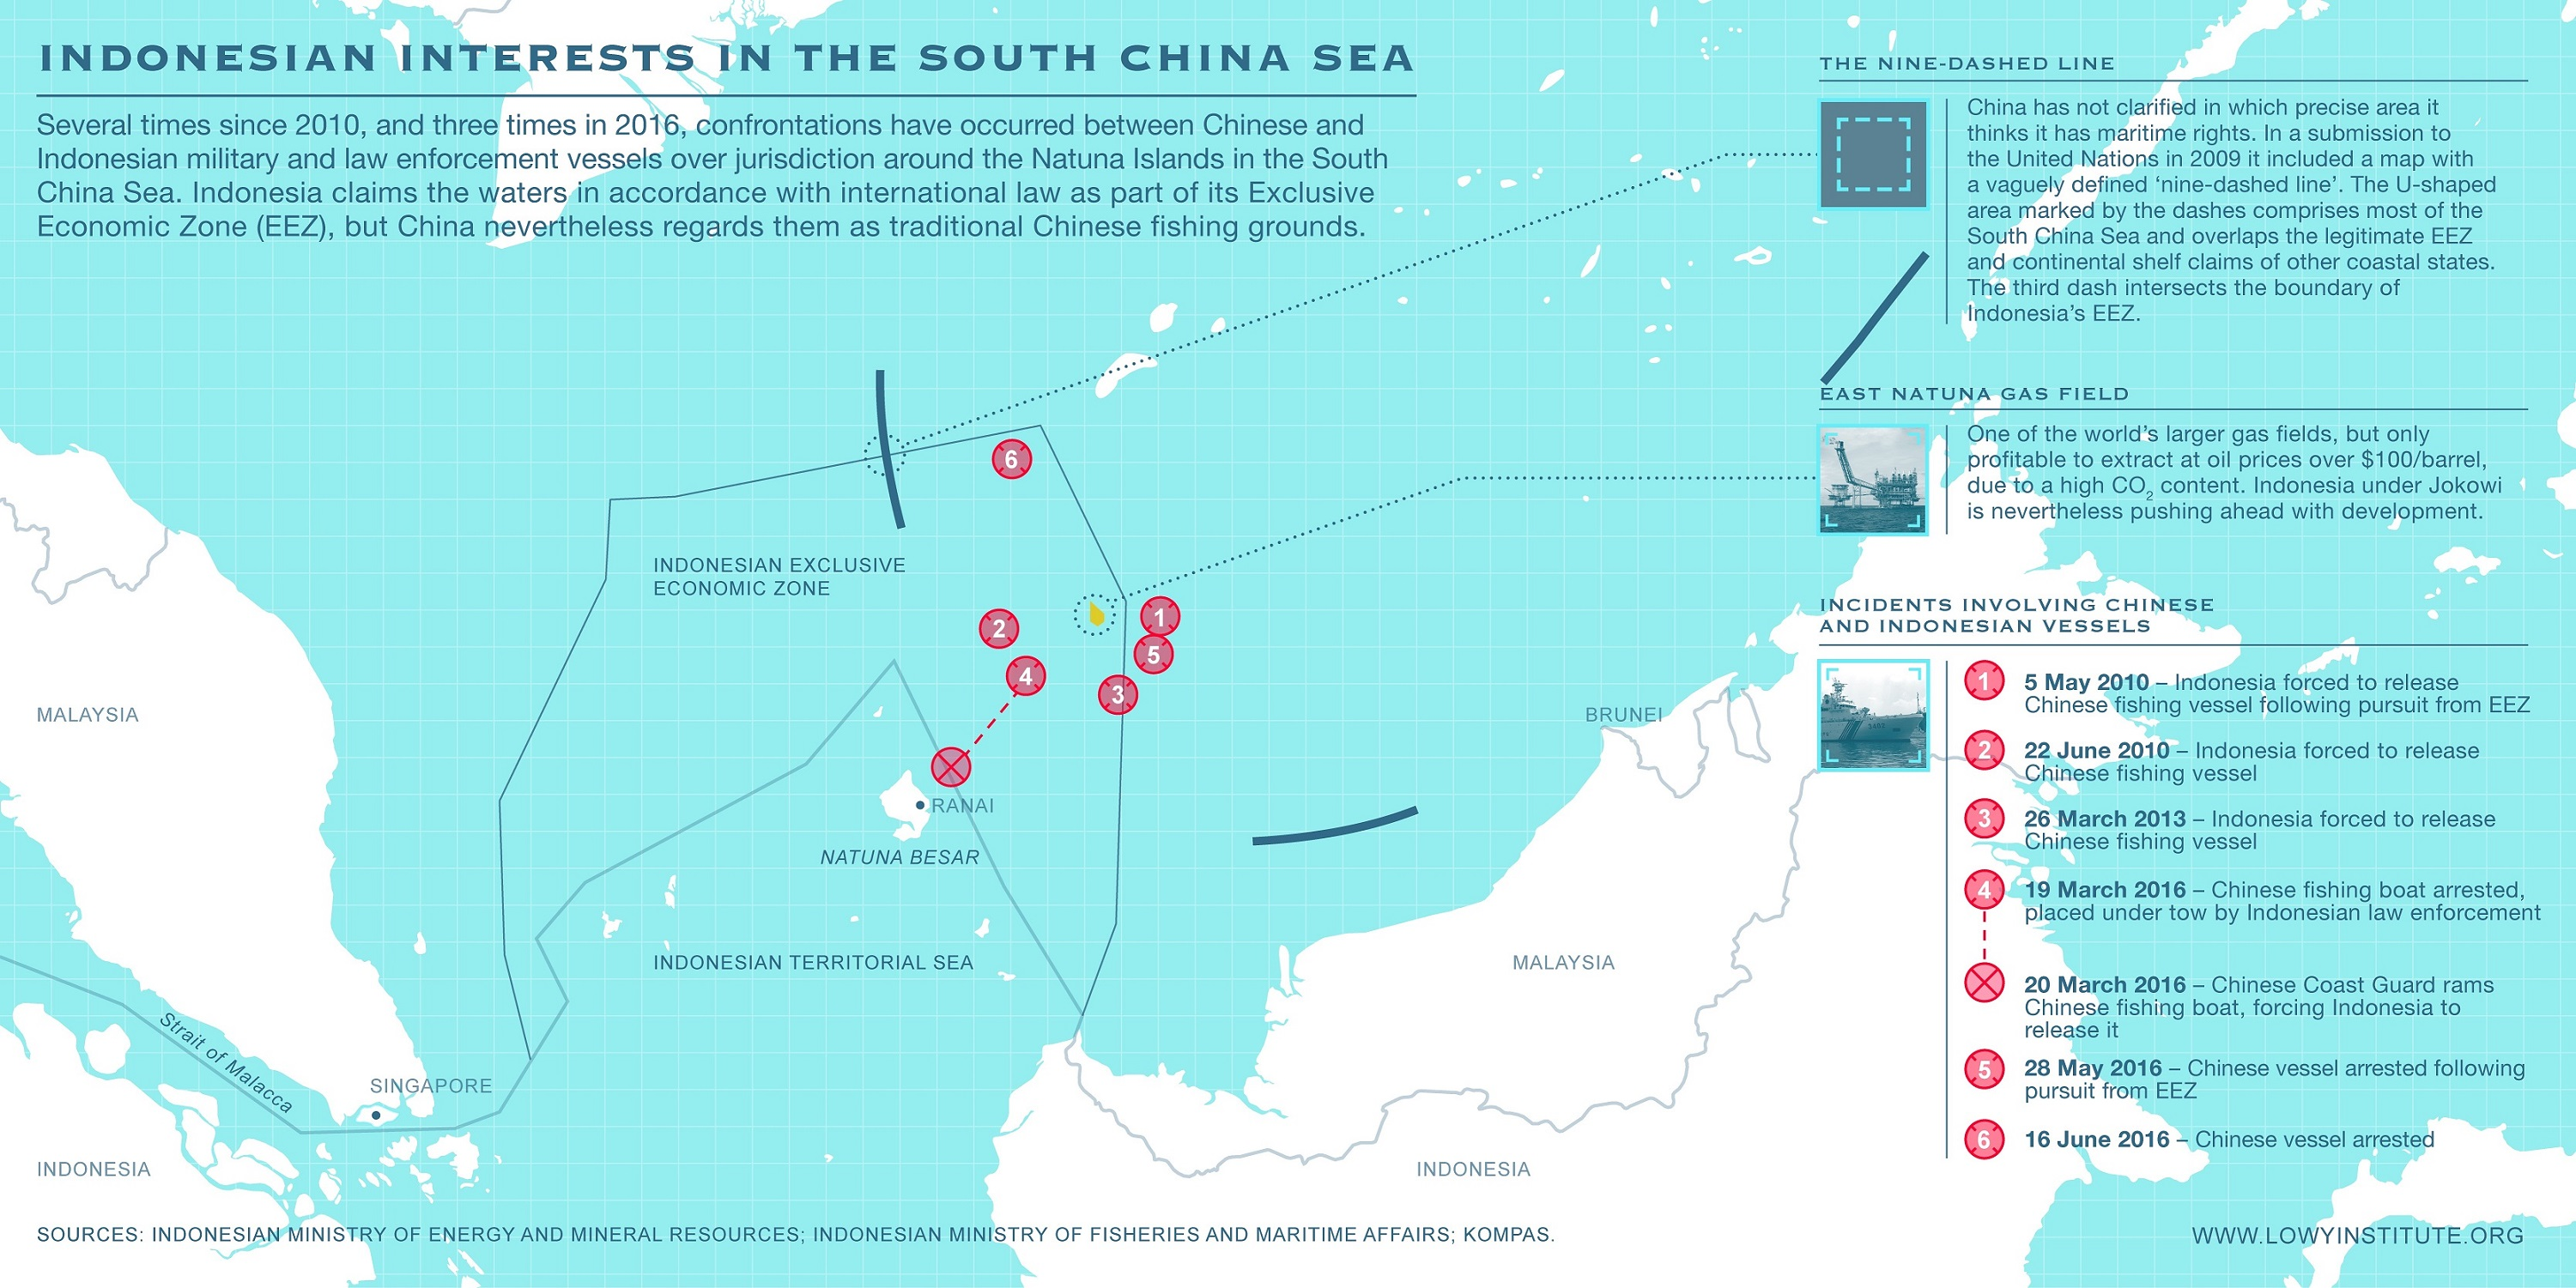 Indonesia increases maritime defense in south china sea as chinas navy grows stronger and its large fishing fleets move further south in search of lucrative fish stocks jakartas concerns have grown gumiabroncs Images